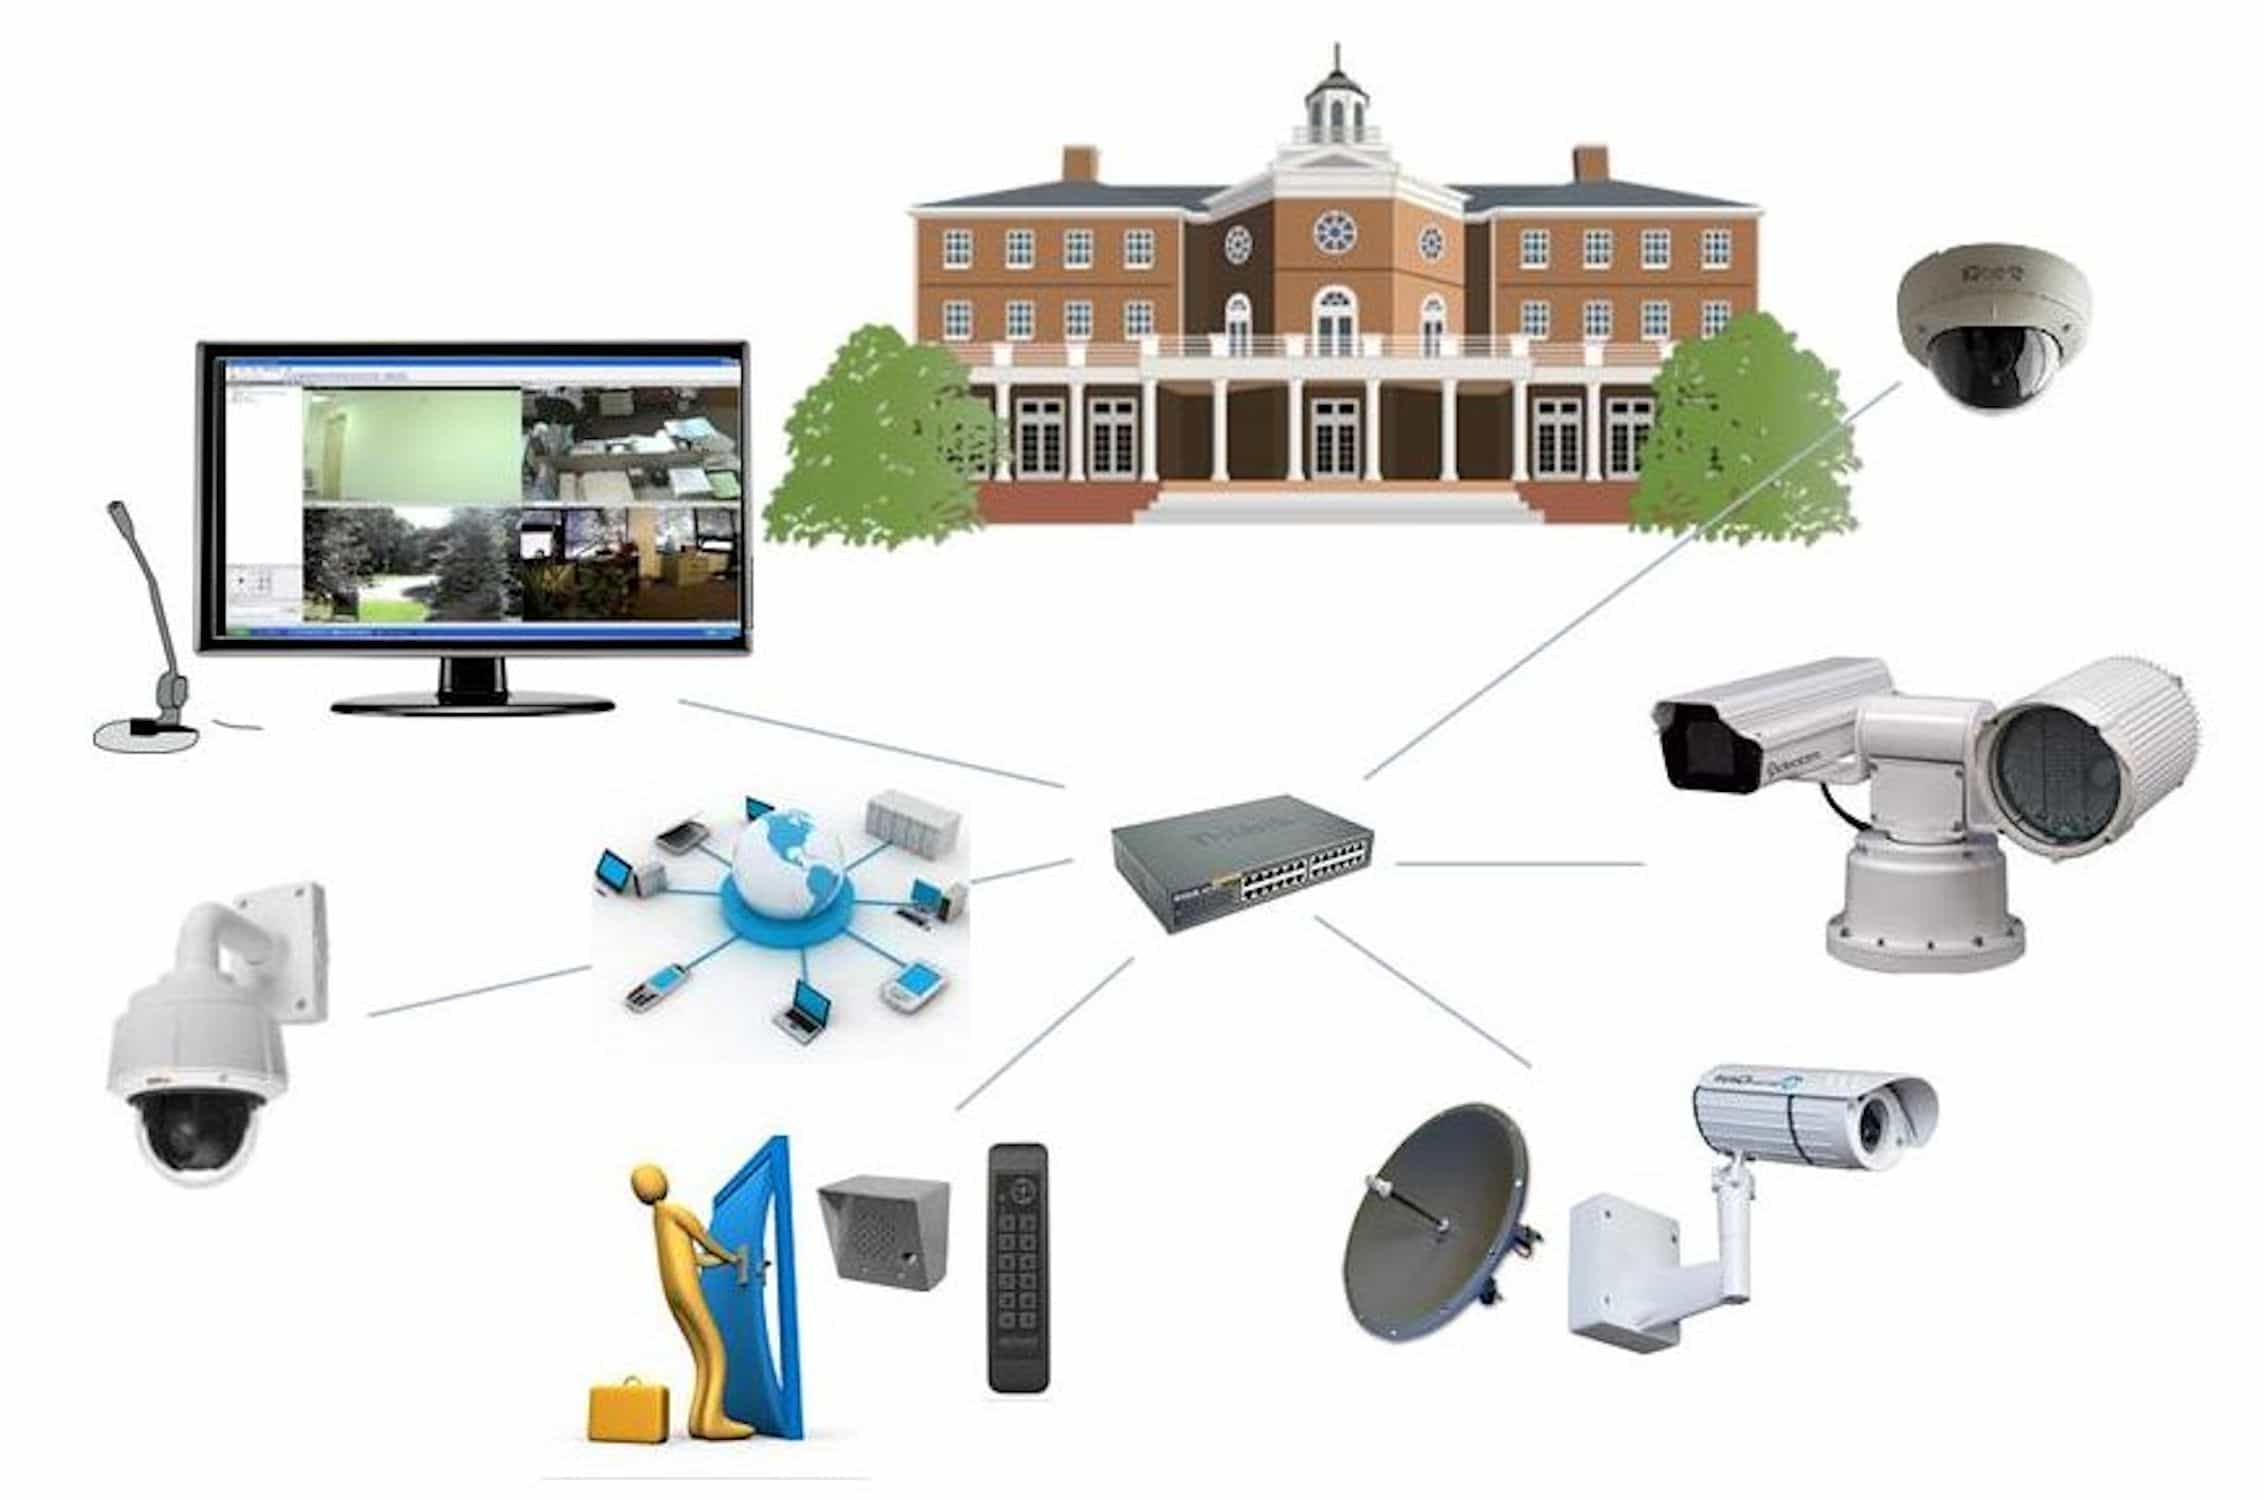 ip camera system concept picture